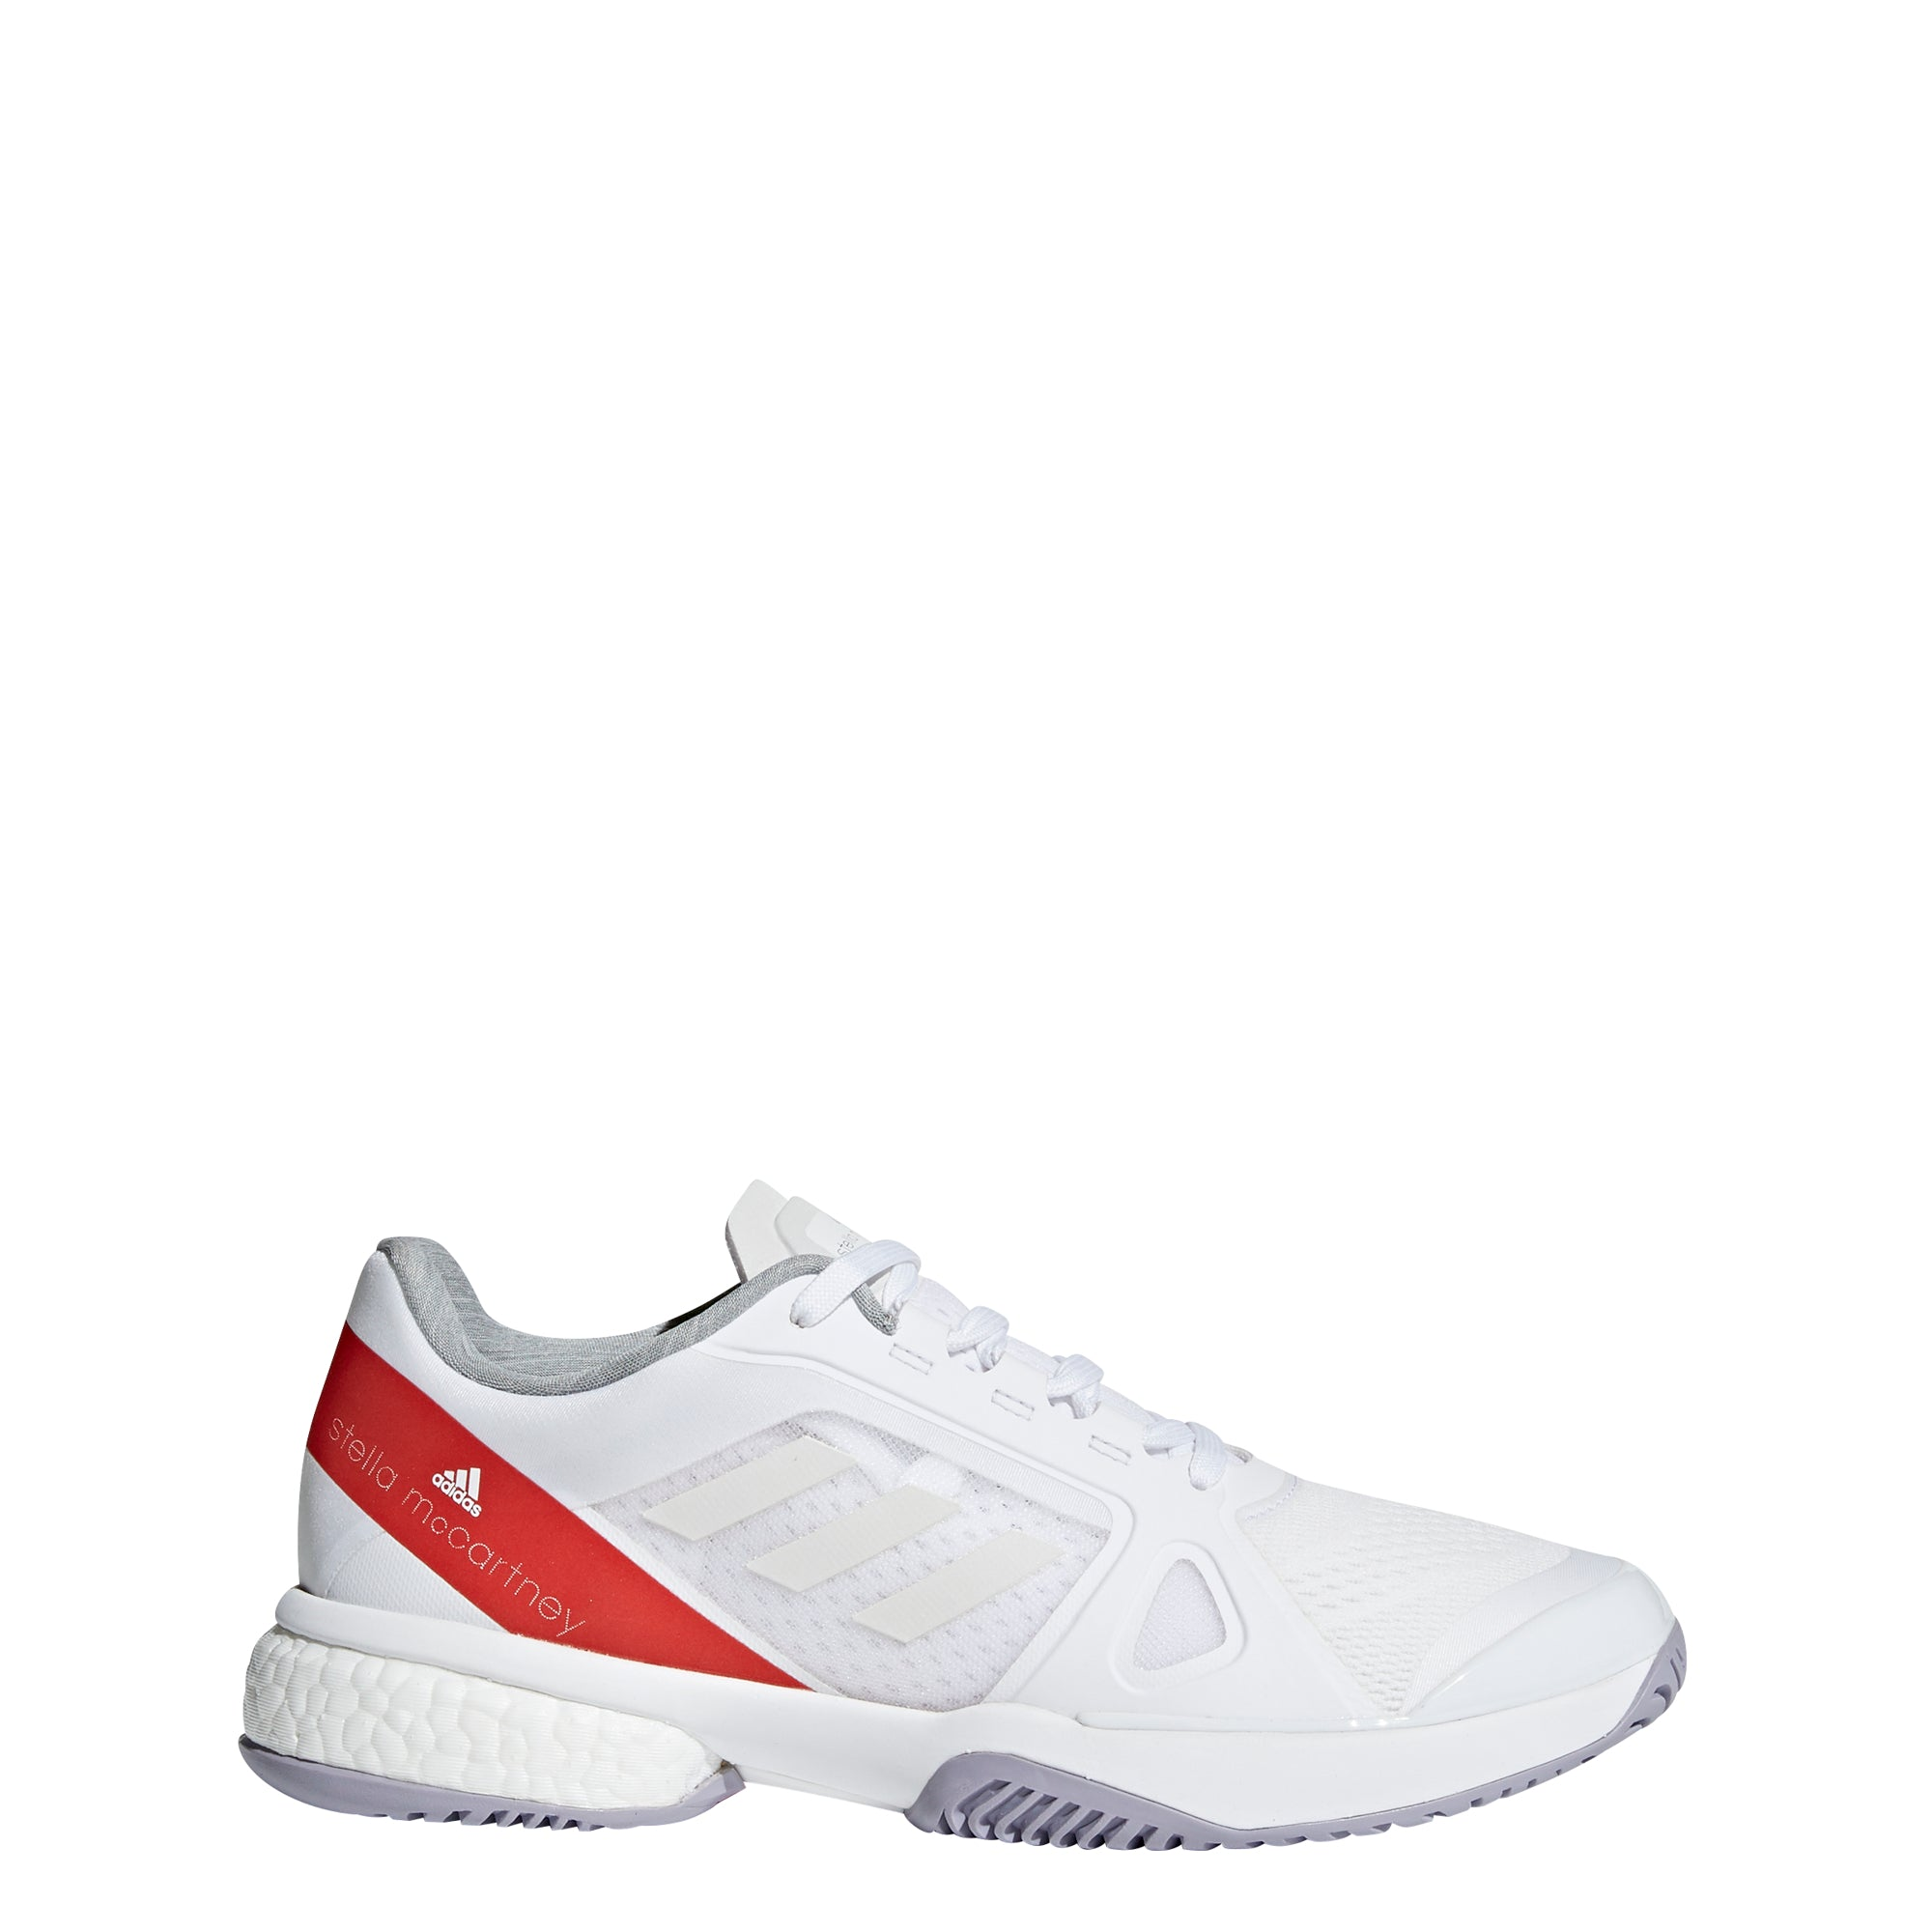 where can i buy new images of autumn shoes Buy adidas Women aSMC Barricade Boost Tennis Shoes, White/Red Online in  Singapore   Royal Sporting House